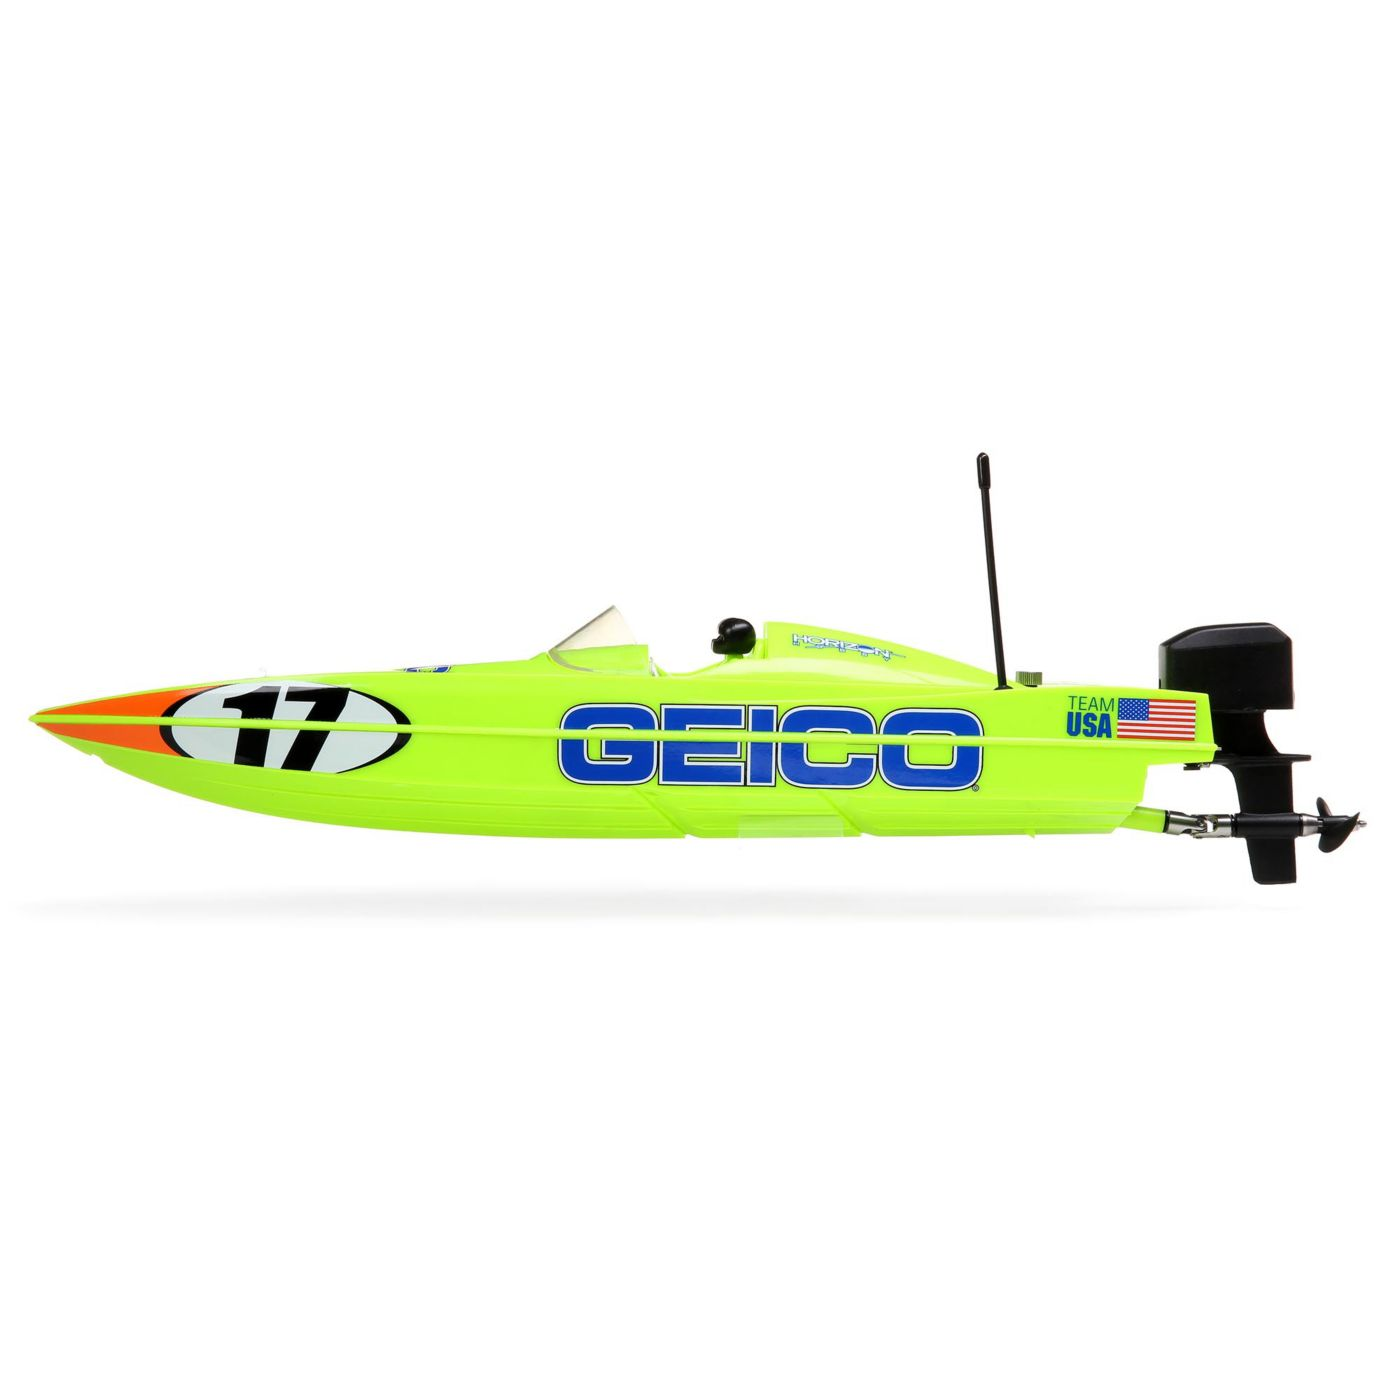 Pro Boat Power Boat Racer - Side